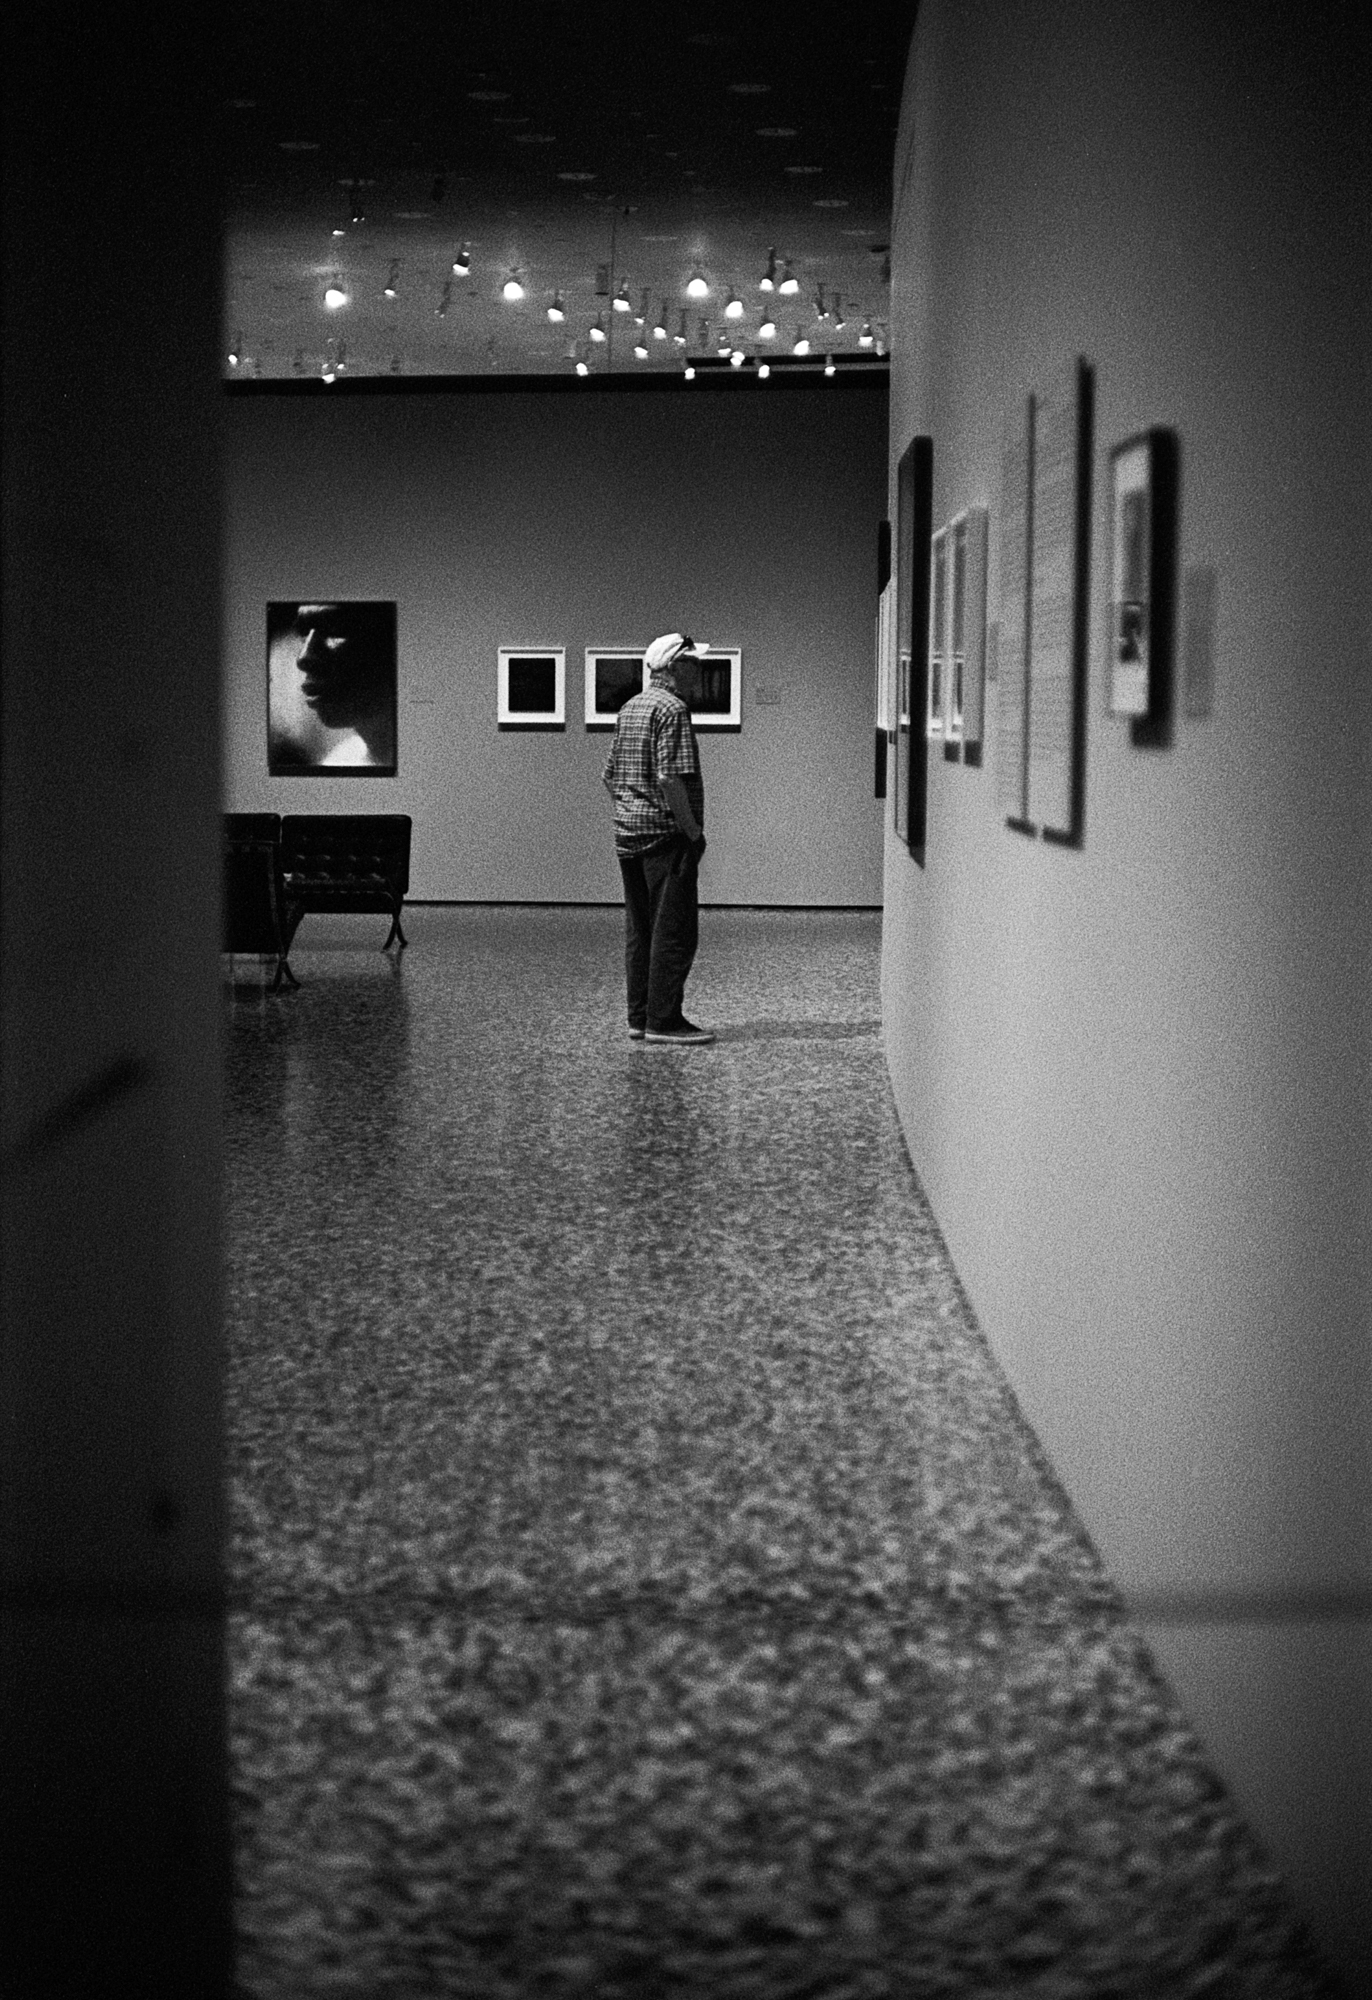 Houston MFAH (1 of 8).jpg